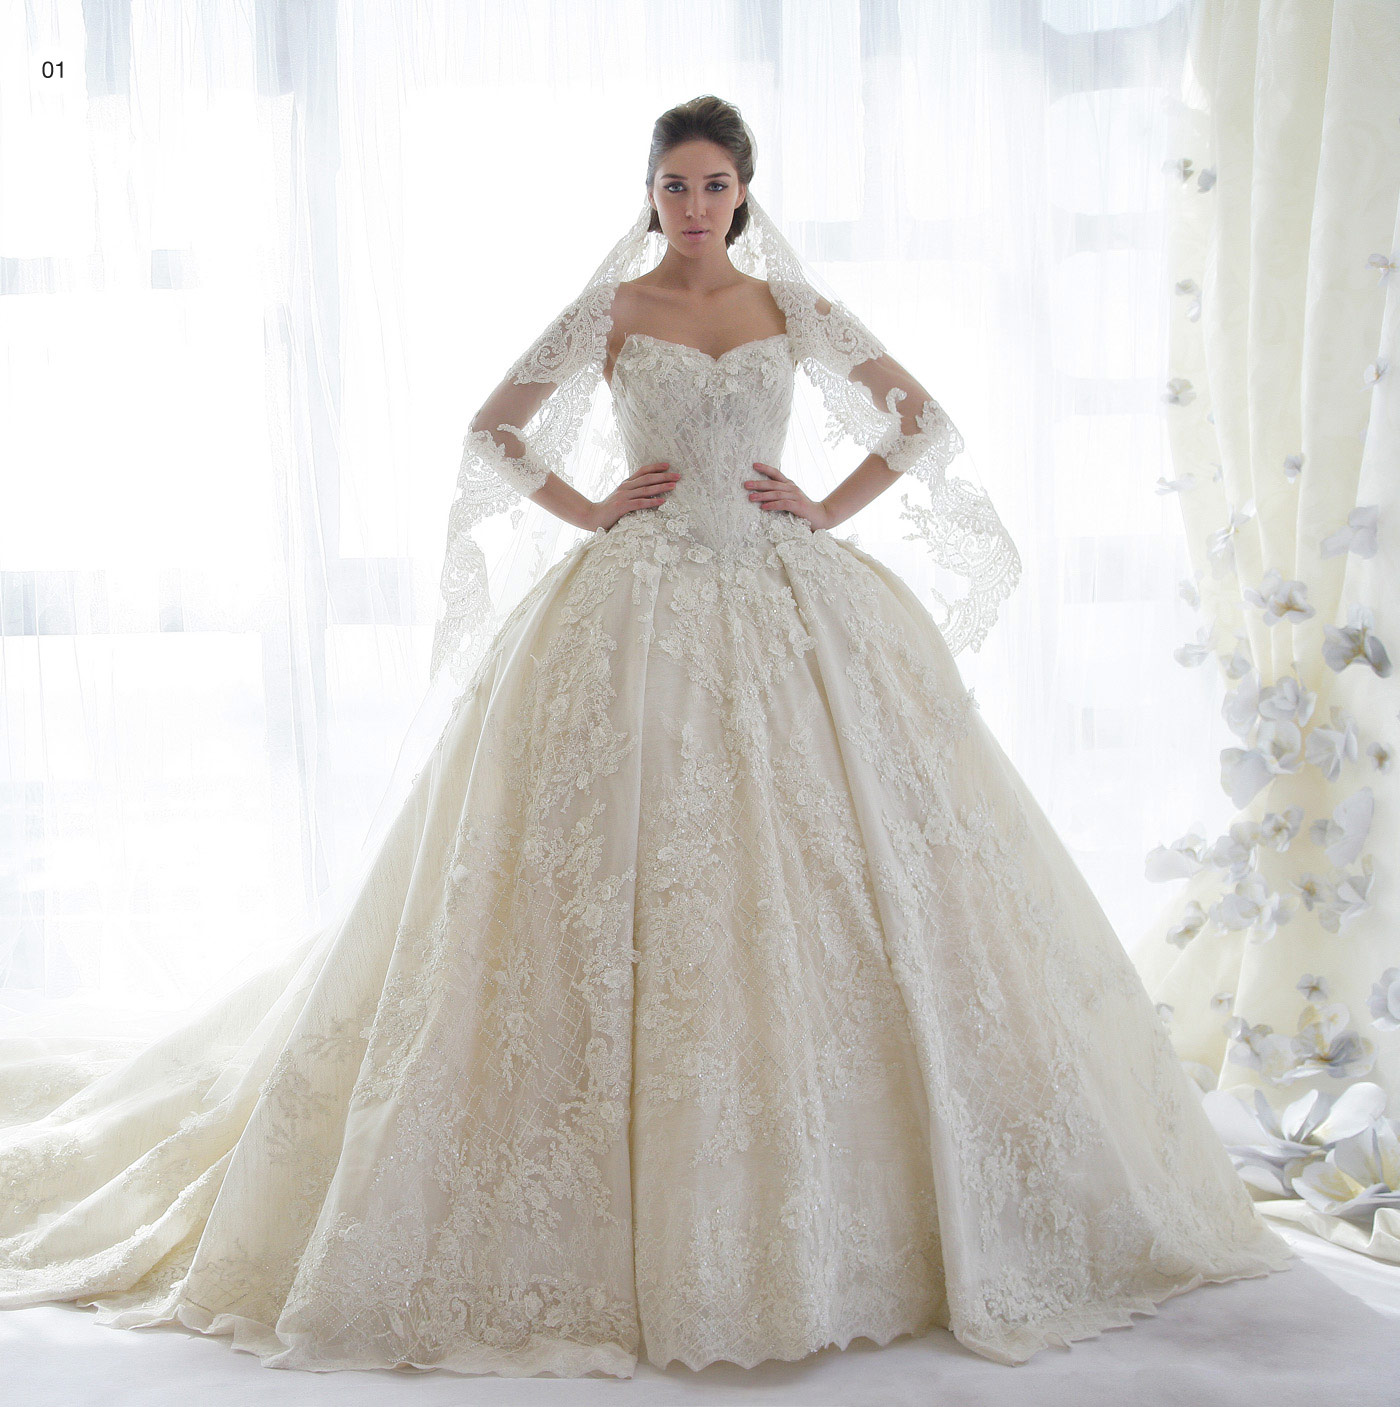 Stunning Wedding Dress: Stunning Bridal Collection By ZIAD NAKAD